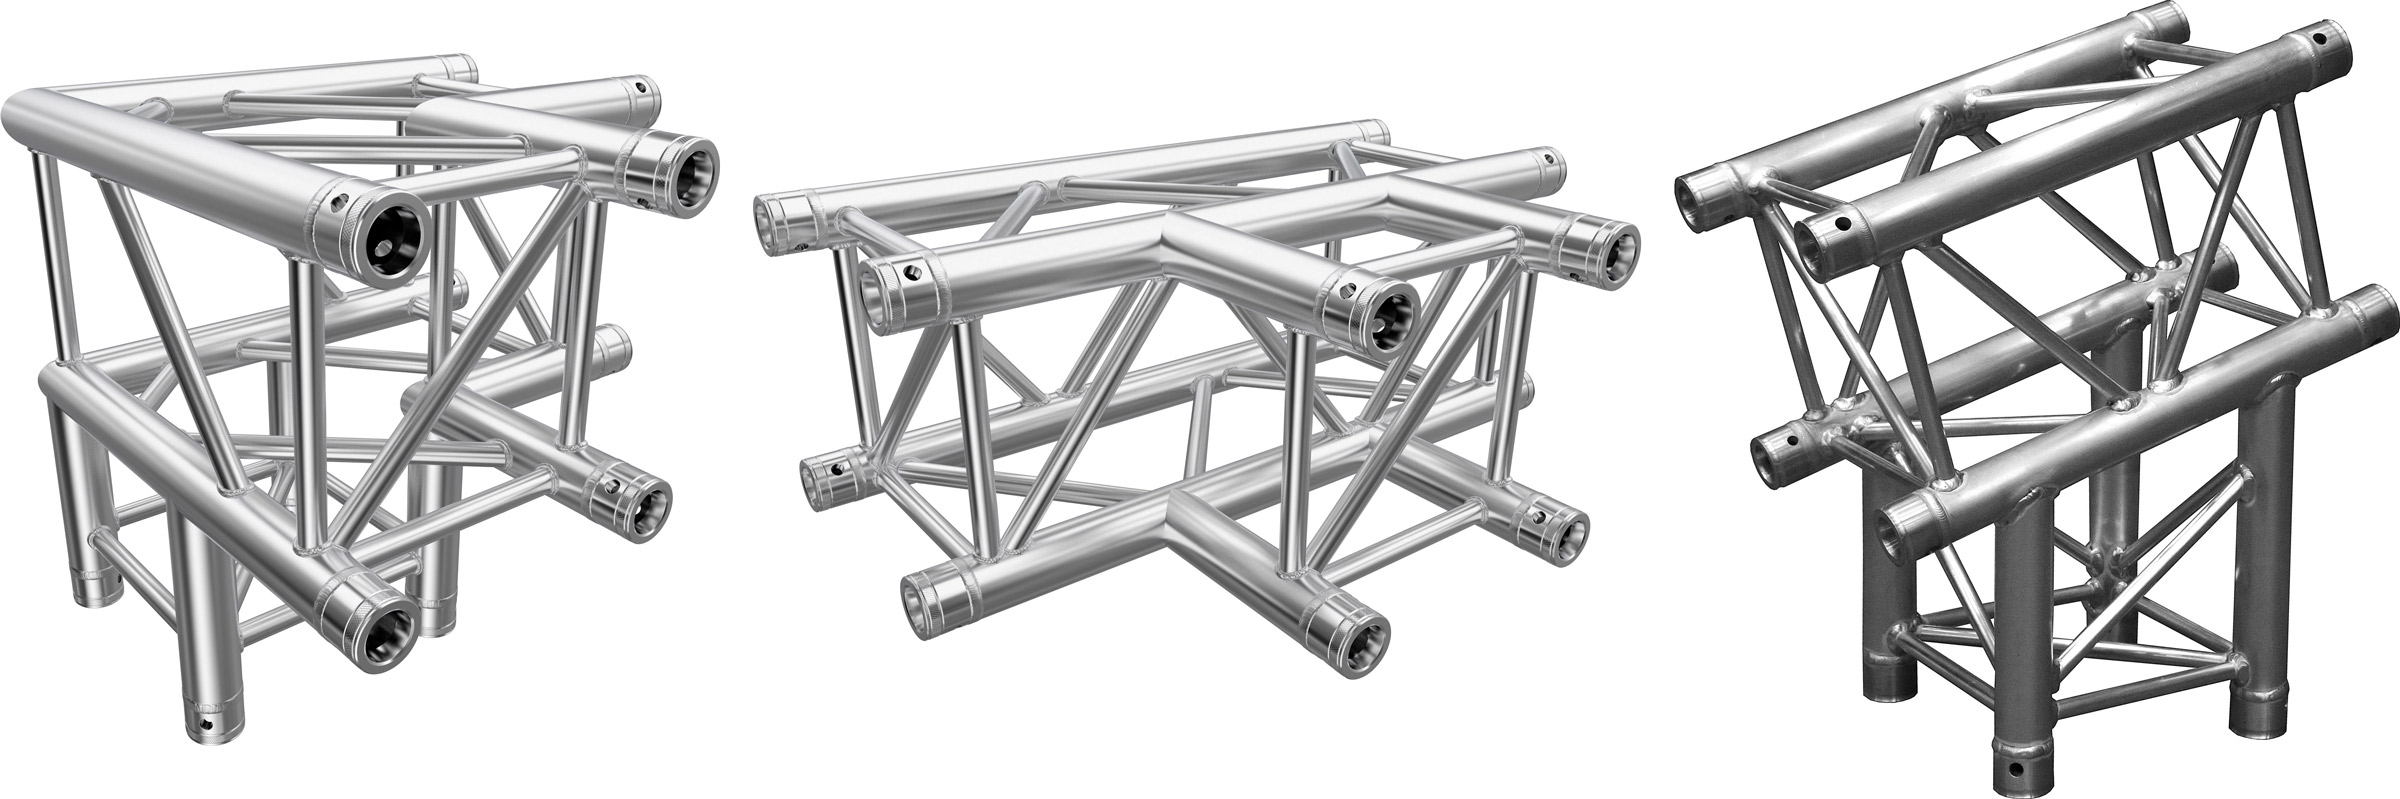 Global Truss F34 3-Weg Ecke Prolyte